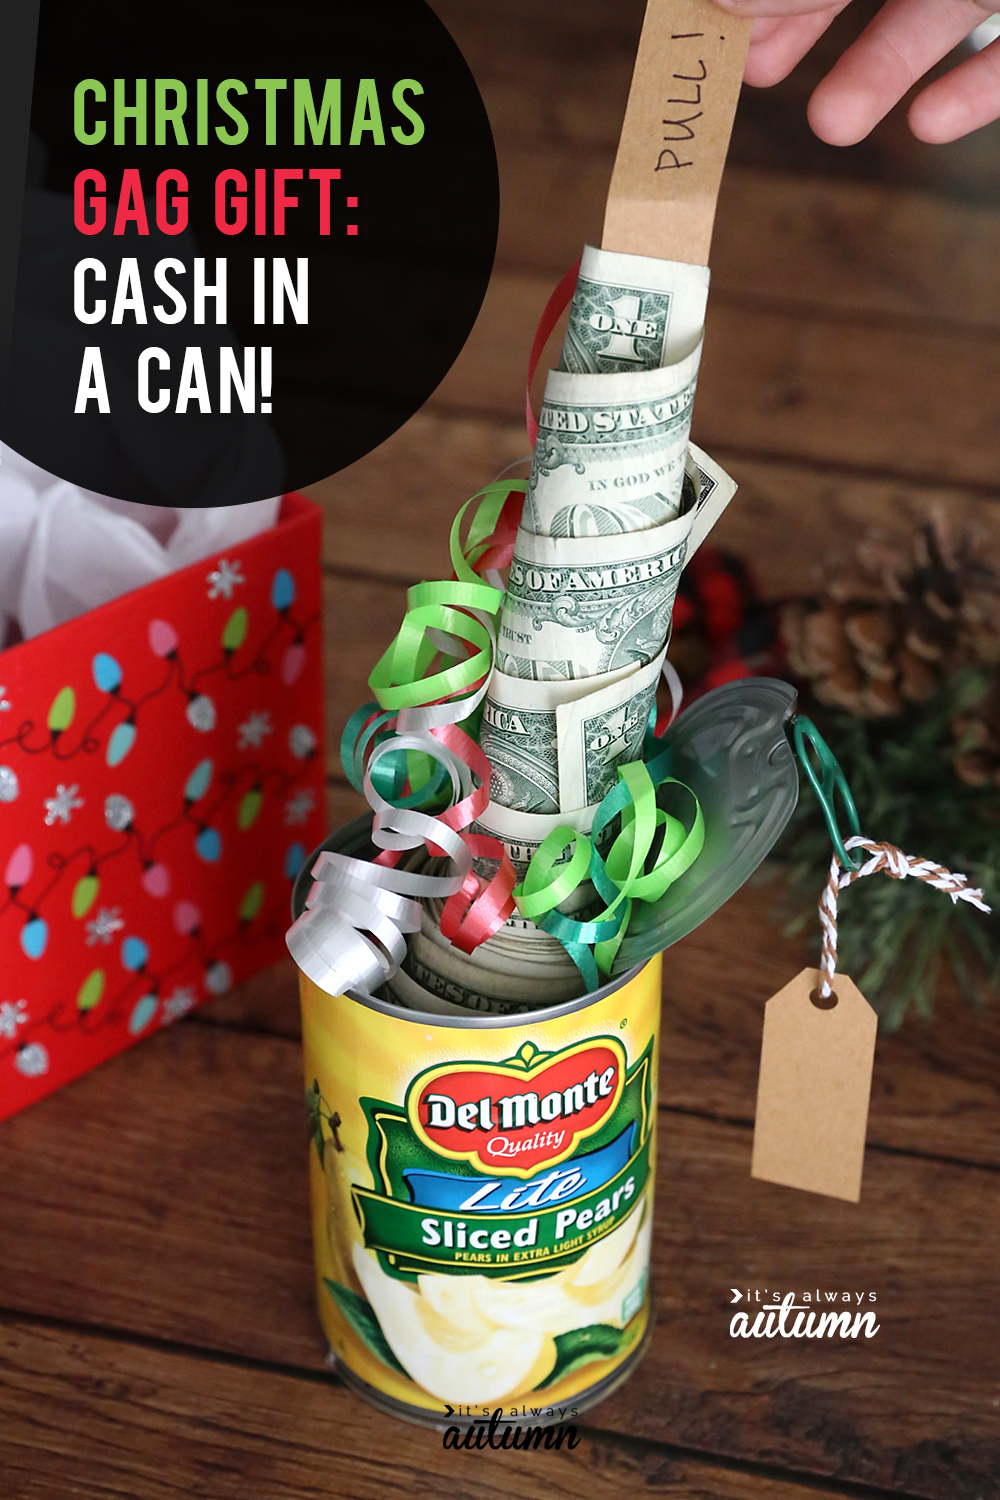 Fun Christmas gift idea: money in a can of fruit! Cute Christmas gag gift. It looks like a can of food, but there's a roll of cash inside.